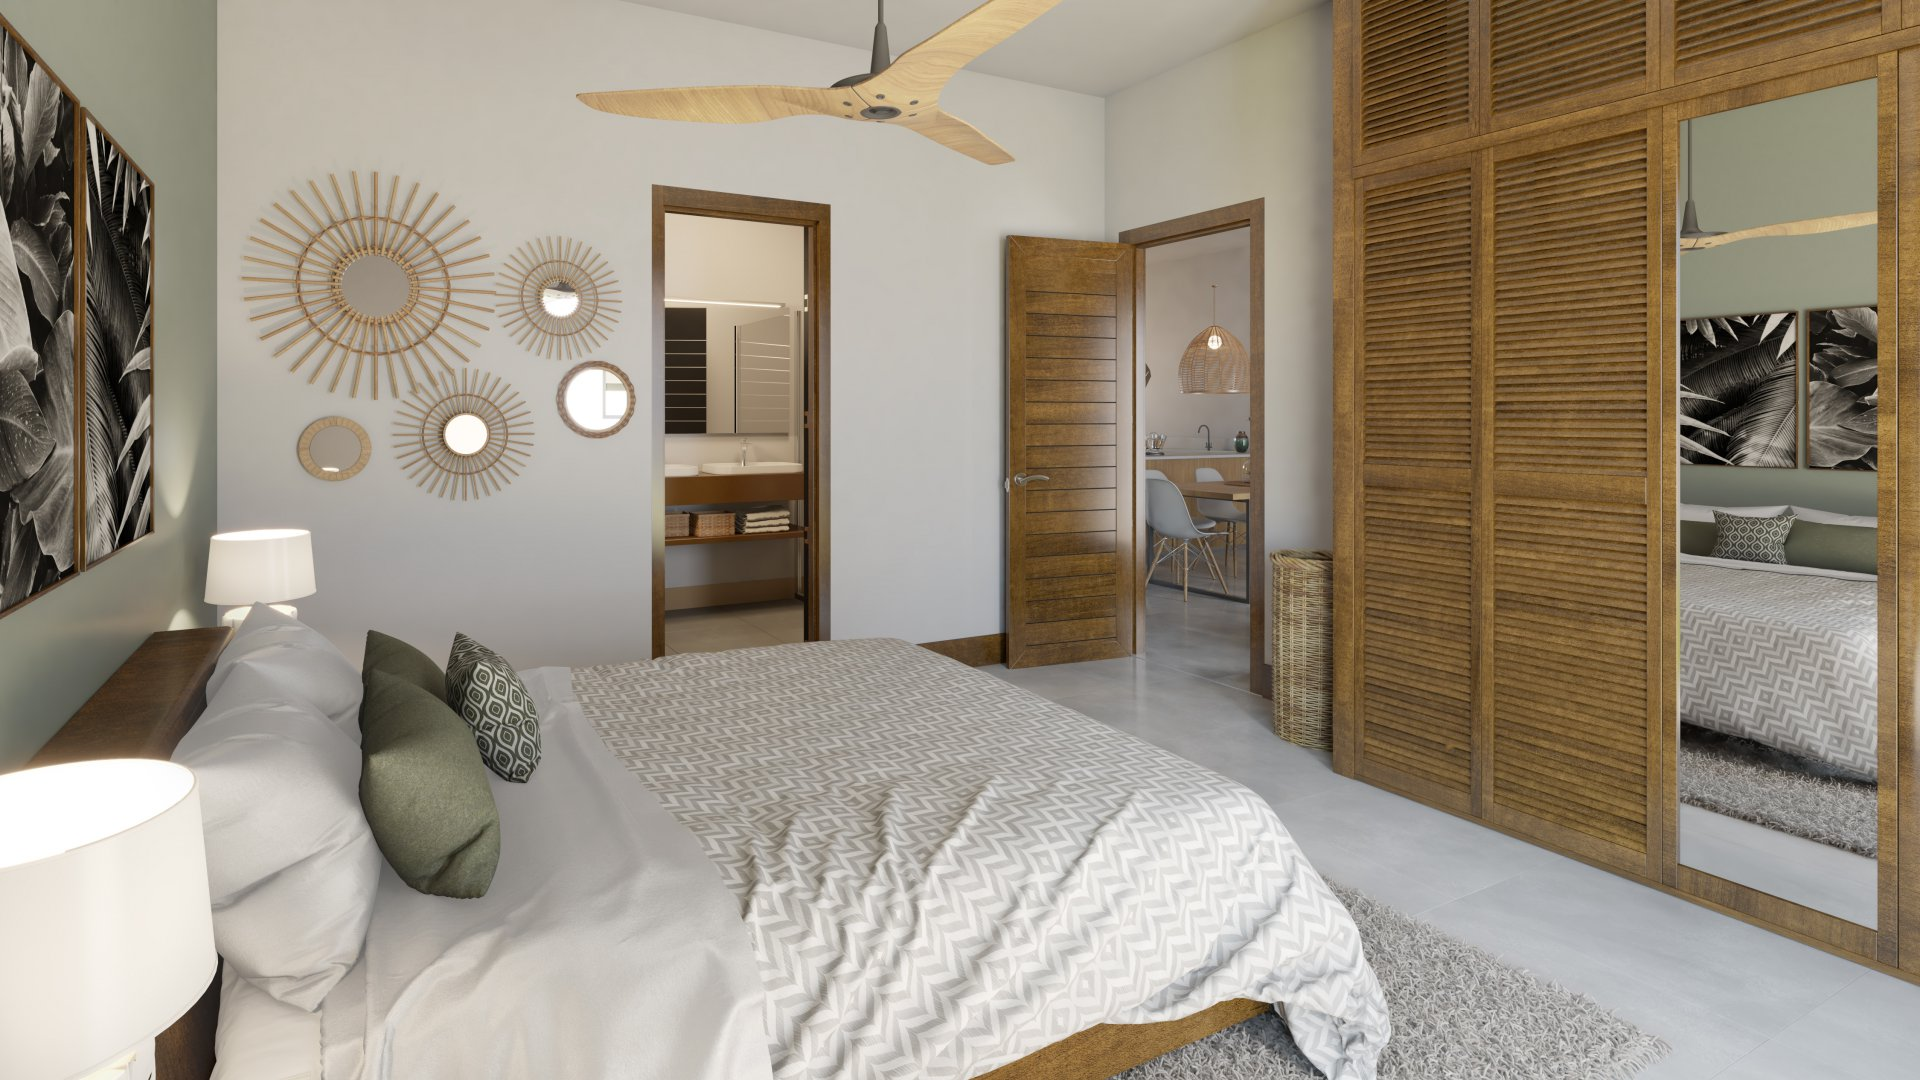 SUMPTUOUS APARTMENTS IN GRAND BAY